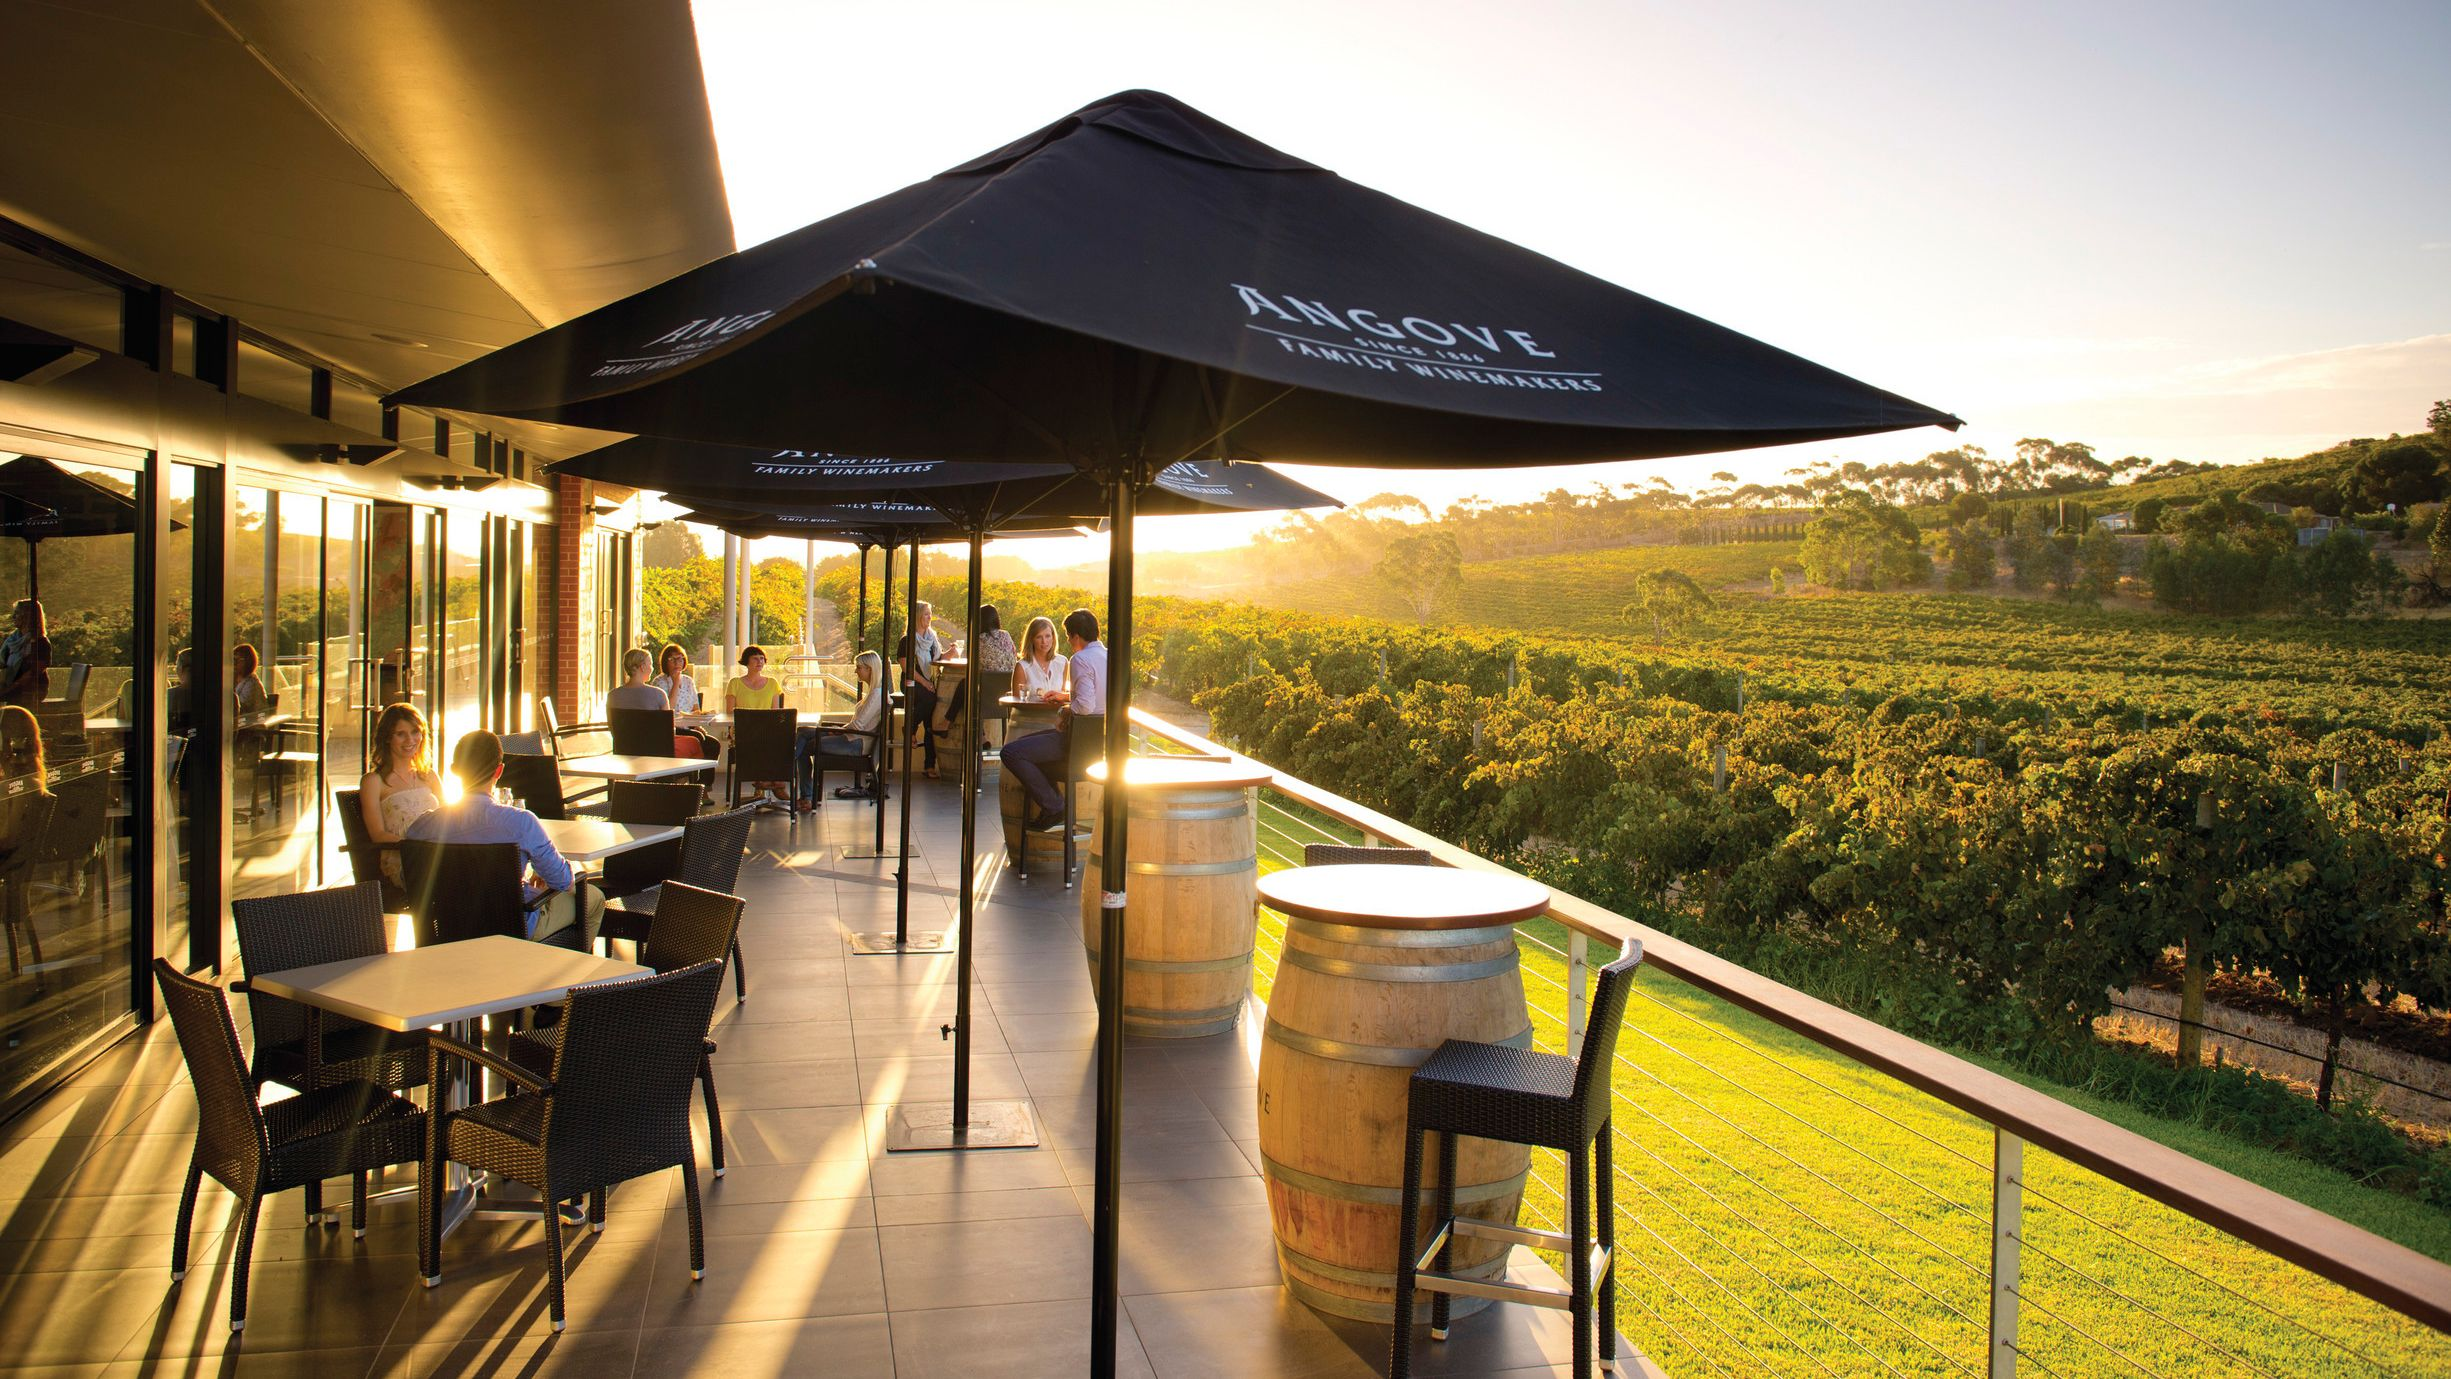 Outdoor patio of a Vineyard